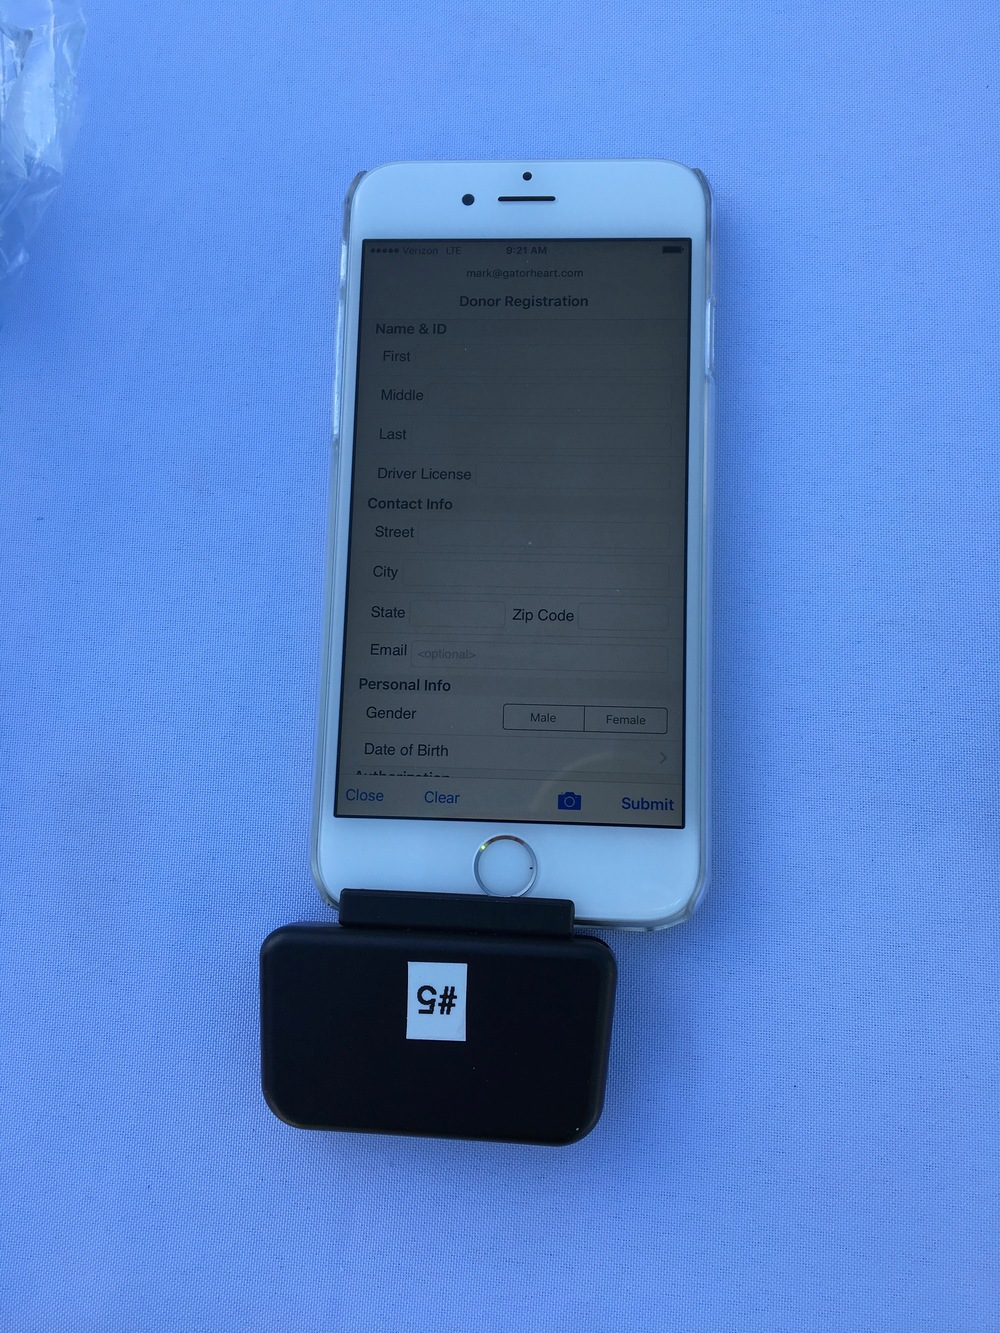 This is an example of the swipe device attached to one of the iPhones provided by the Donor Network. I am logged in to the registration app and when license is swiped, all the fields are filled in and then the person can agree and submit their choice to register - very smooth and easy!